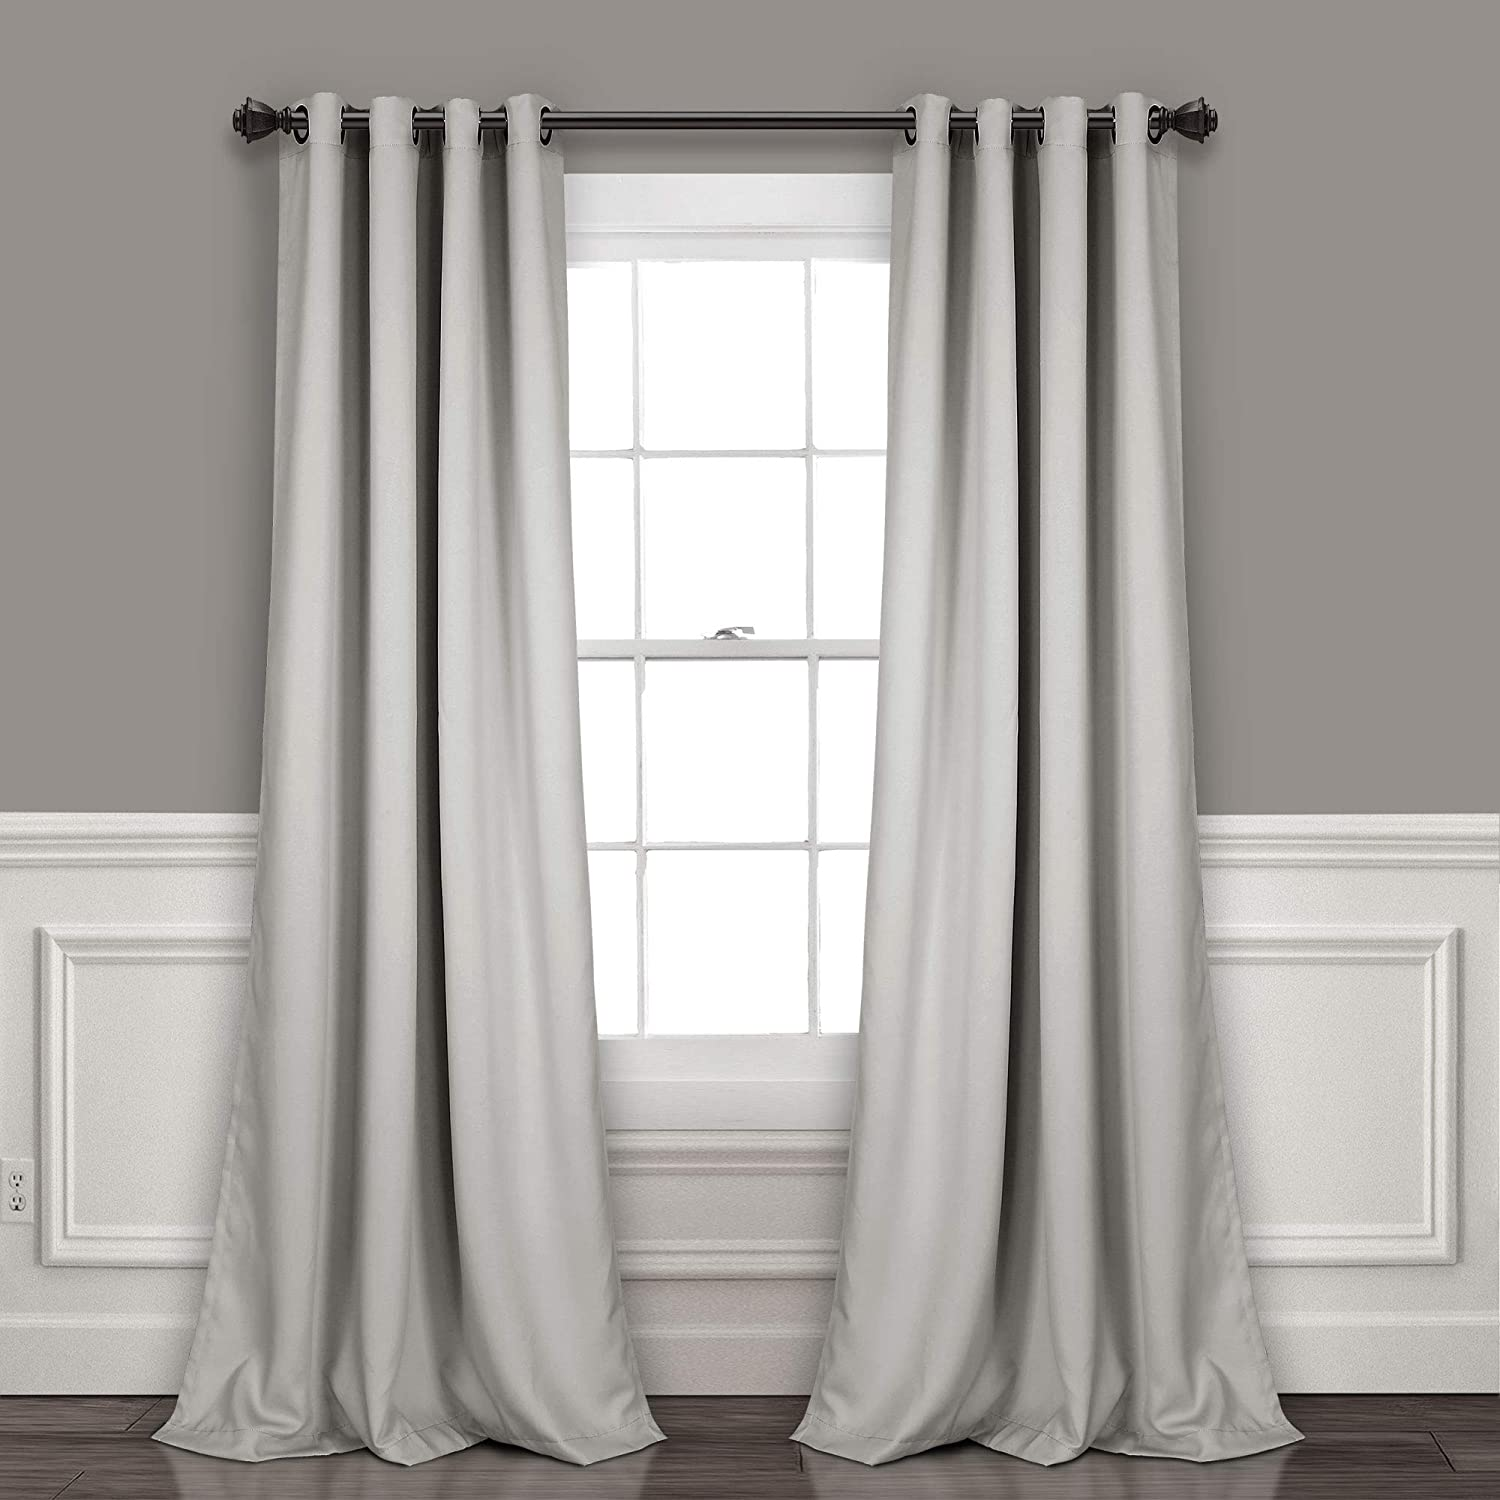 "Lush Decor Curtains-Grommet Panel with Insulated Blackout Lining, Room Darkening Window Set (Pair), 84"" L, Light Gray"